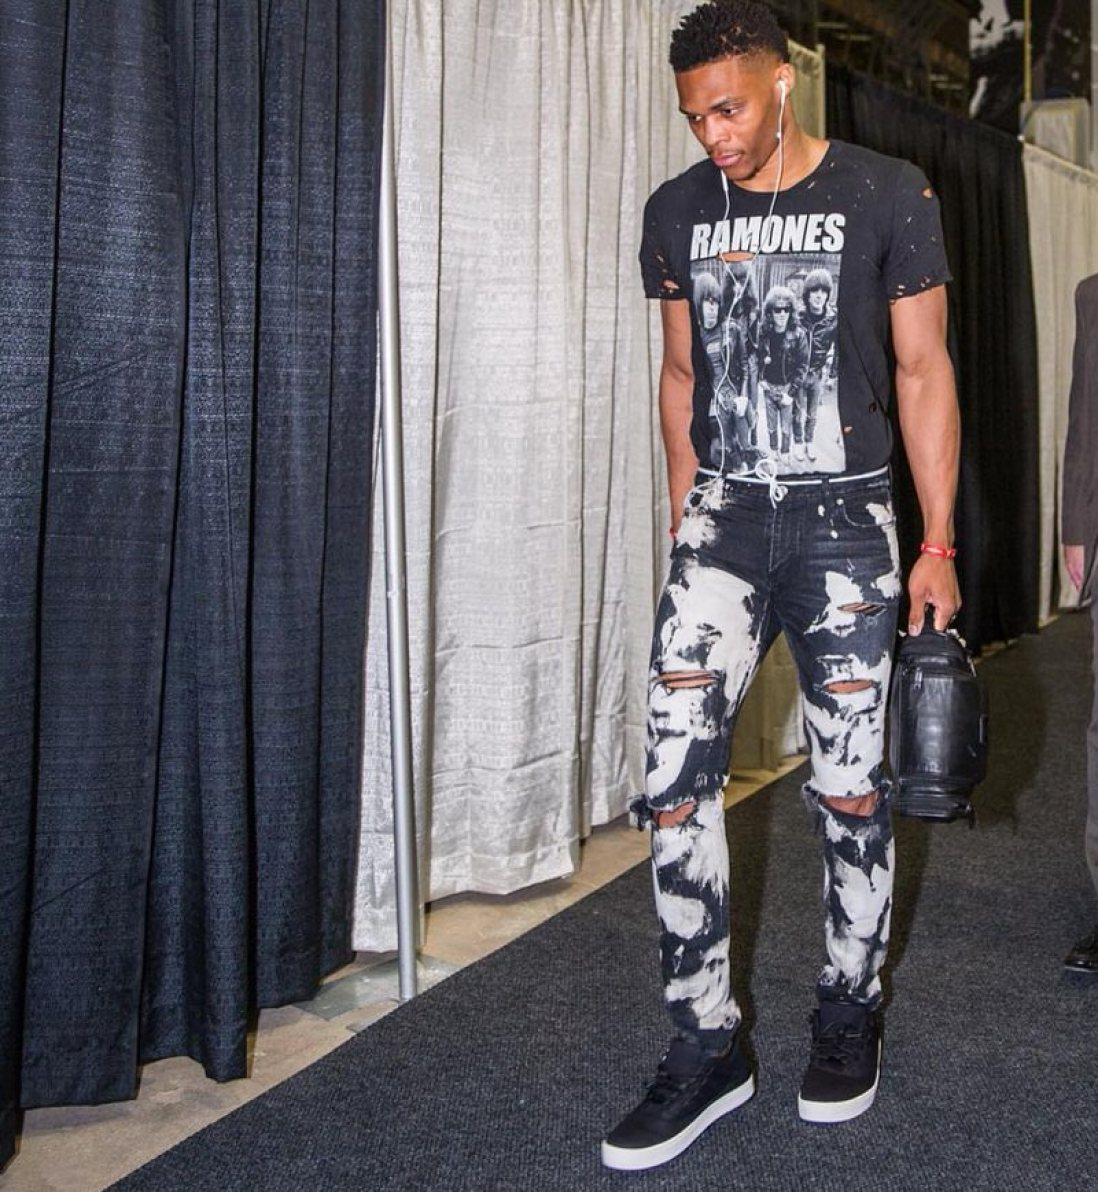 Russell Westbrook didn't just bring back a vintage tee. He brought The Ramones' entire influence in style back into the trend.